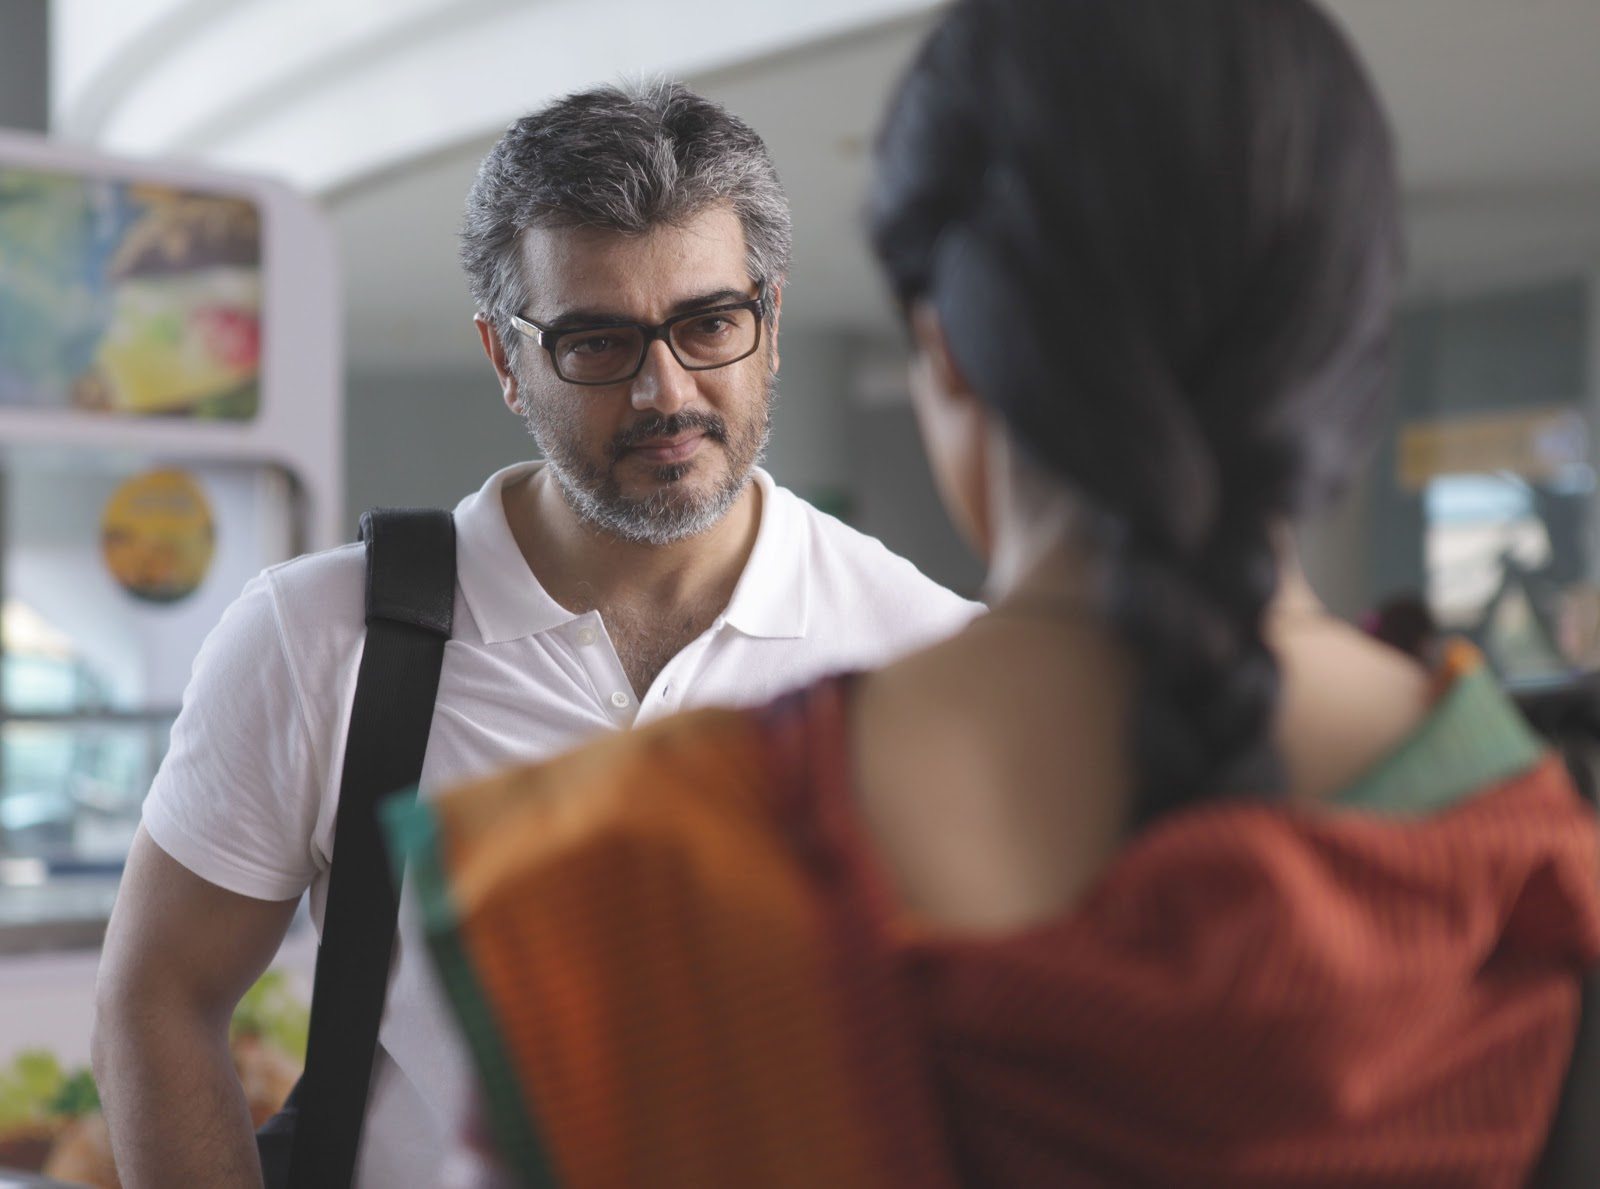 http://1.bp.blogspot.com/-H5k2HpEKLcw/UDjCUHzyzoI/AAAAAAAAFCE/CEqdMU8pzuo/s1600/Thala-Ajith-In-English-Vinglish-Movie-Stills-8.JPG